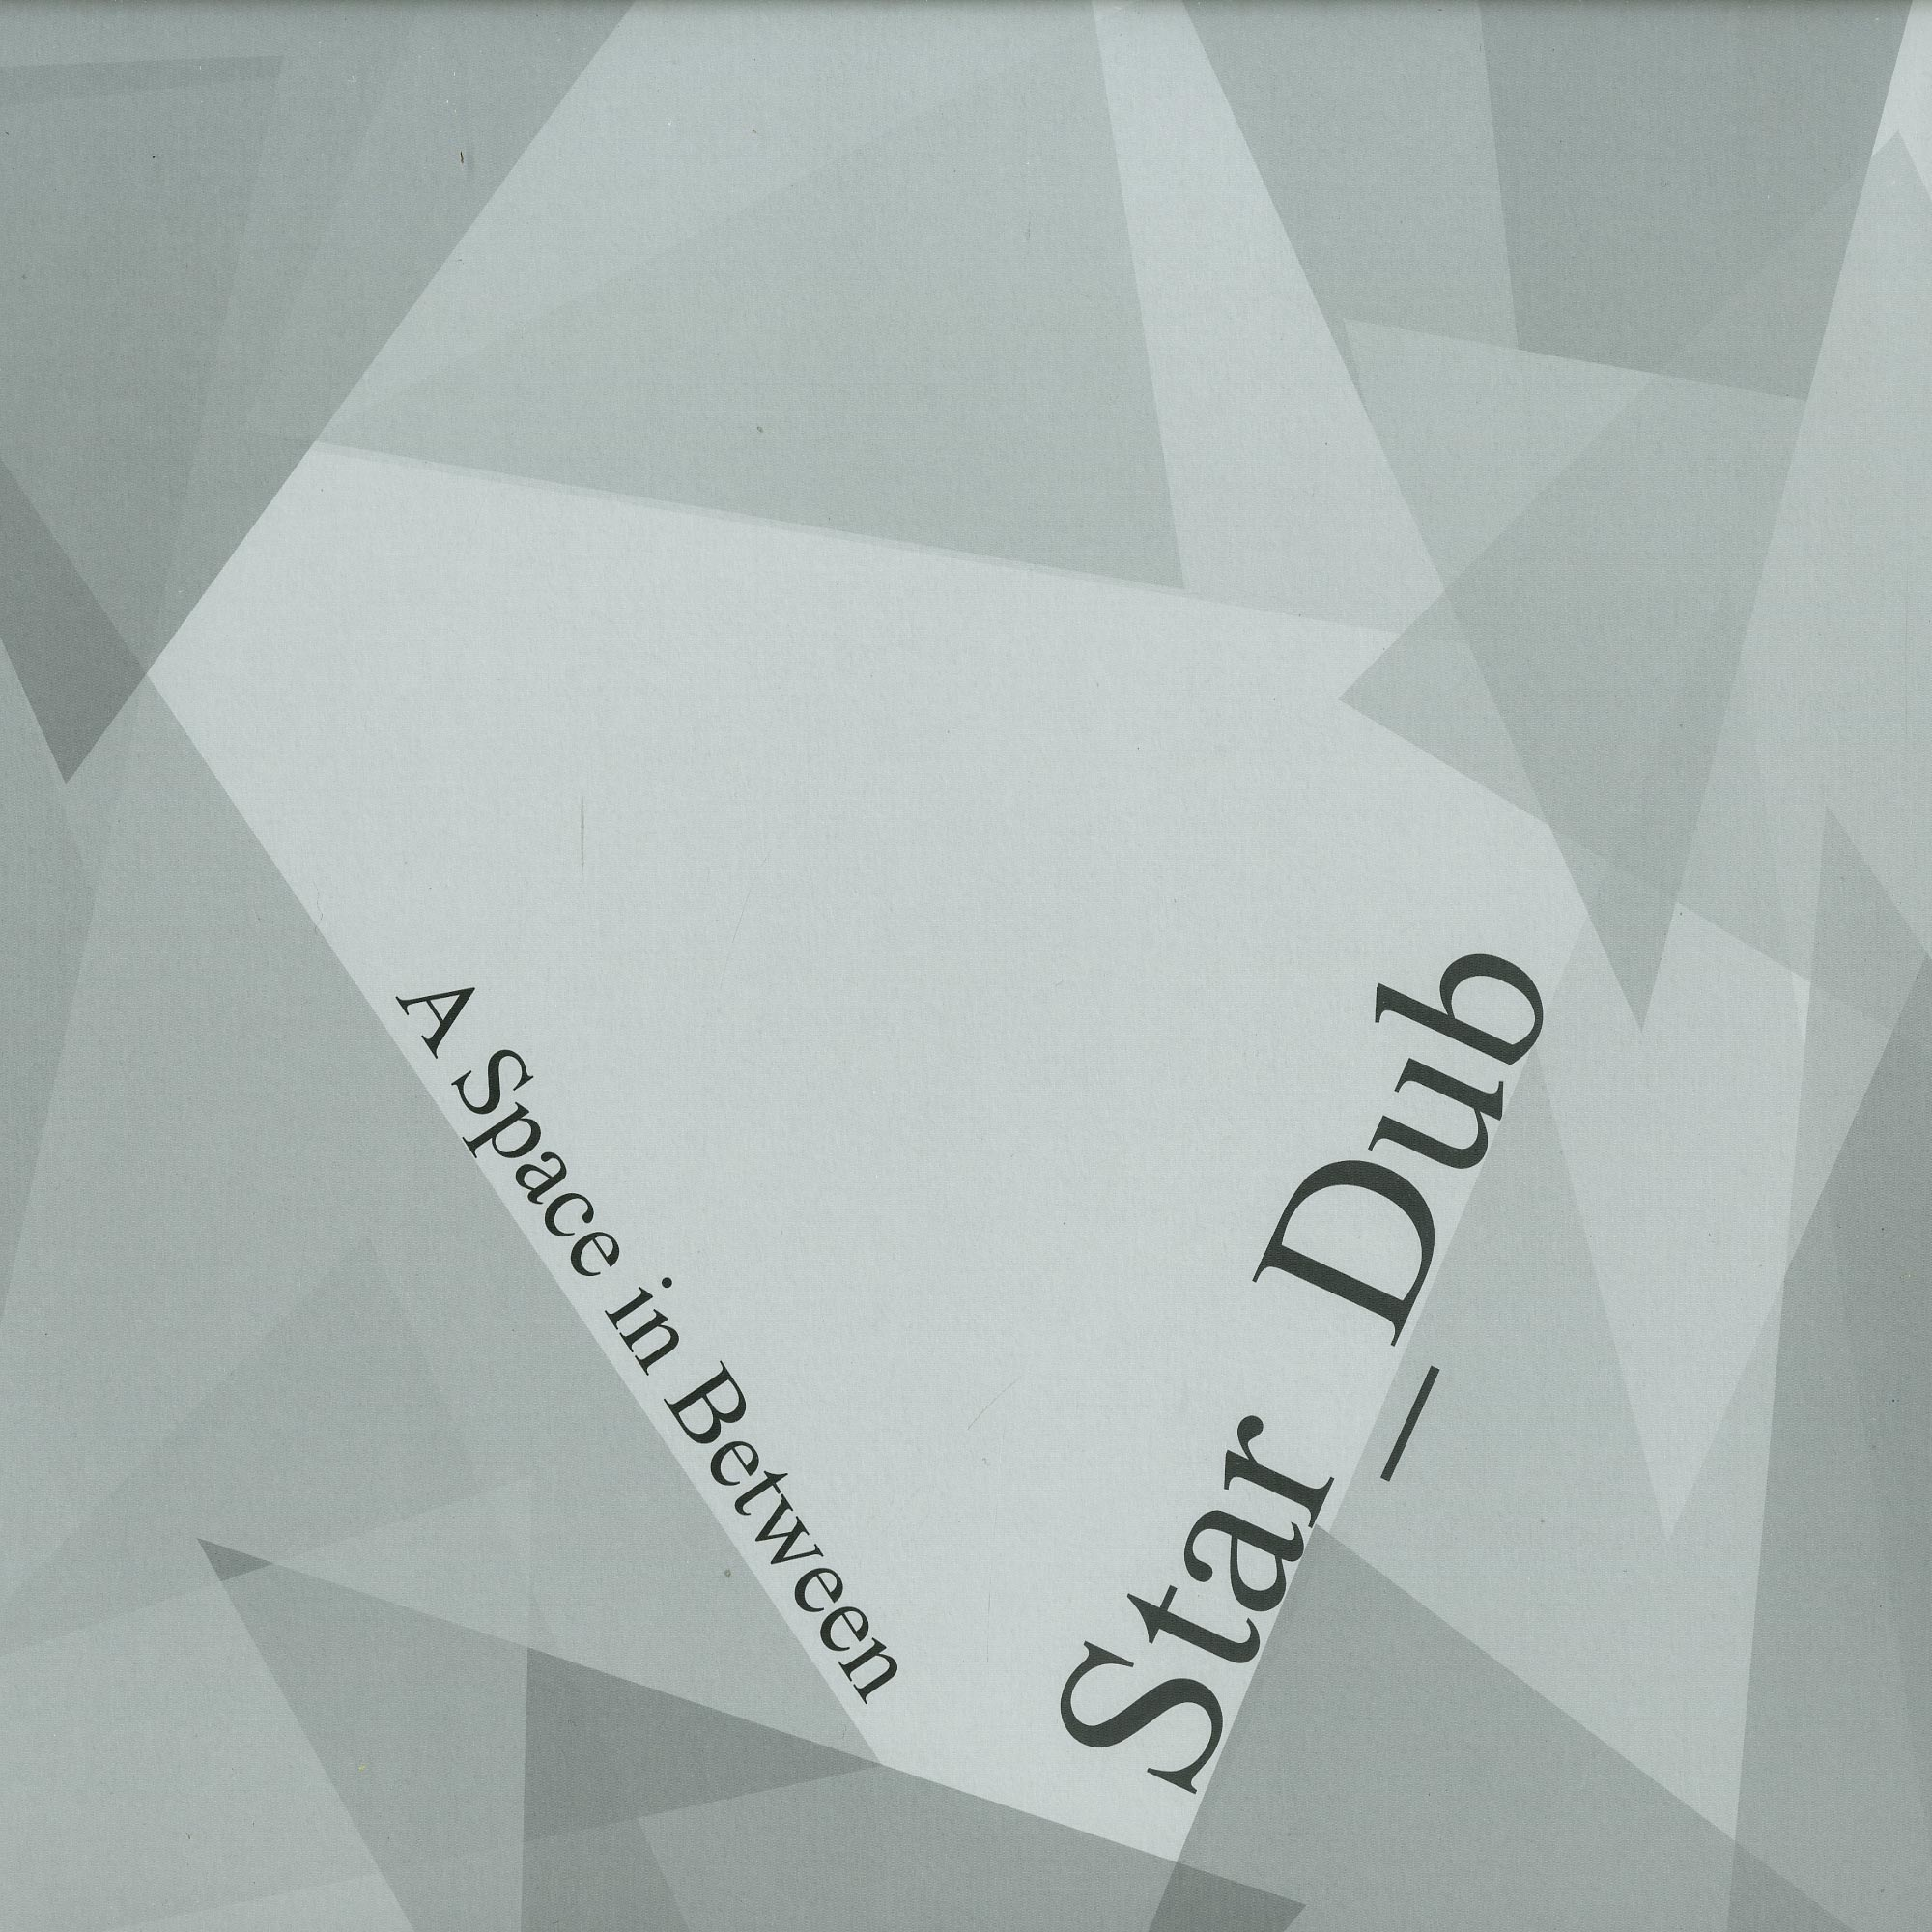 Star Dub - A SPACE IN BETWEEN